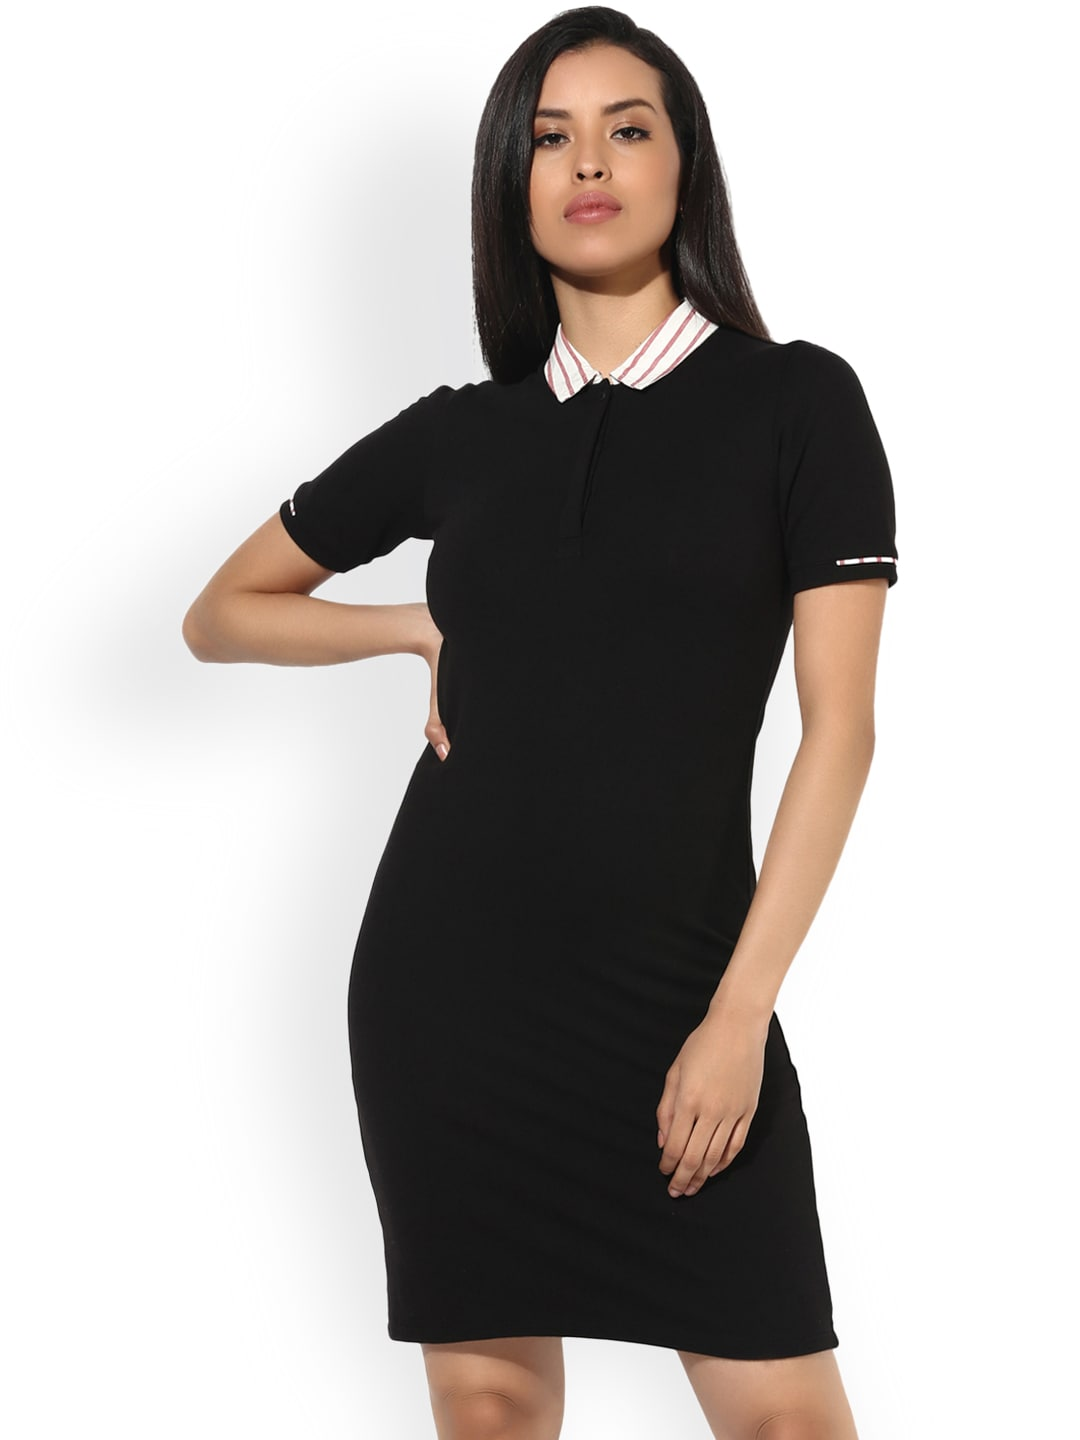 766e8fbd198 SIMILAR PRODUCTS. Leo Sansini. Rs. 1799. Women Solid T-shirt Dress ·  Aeropostale